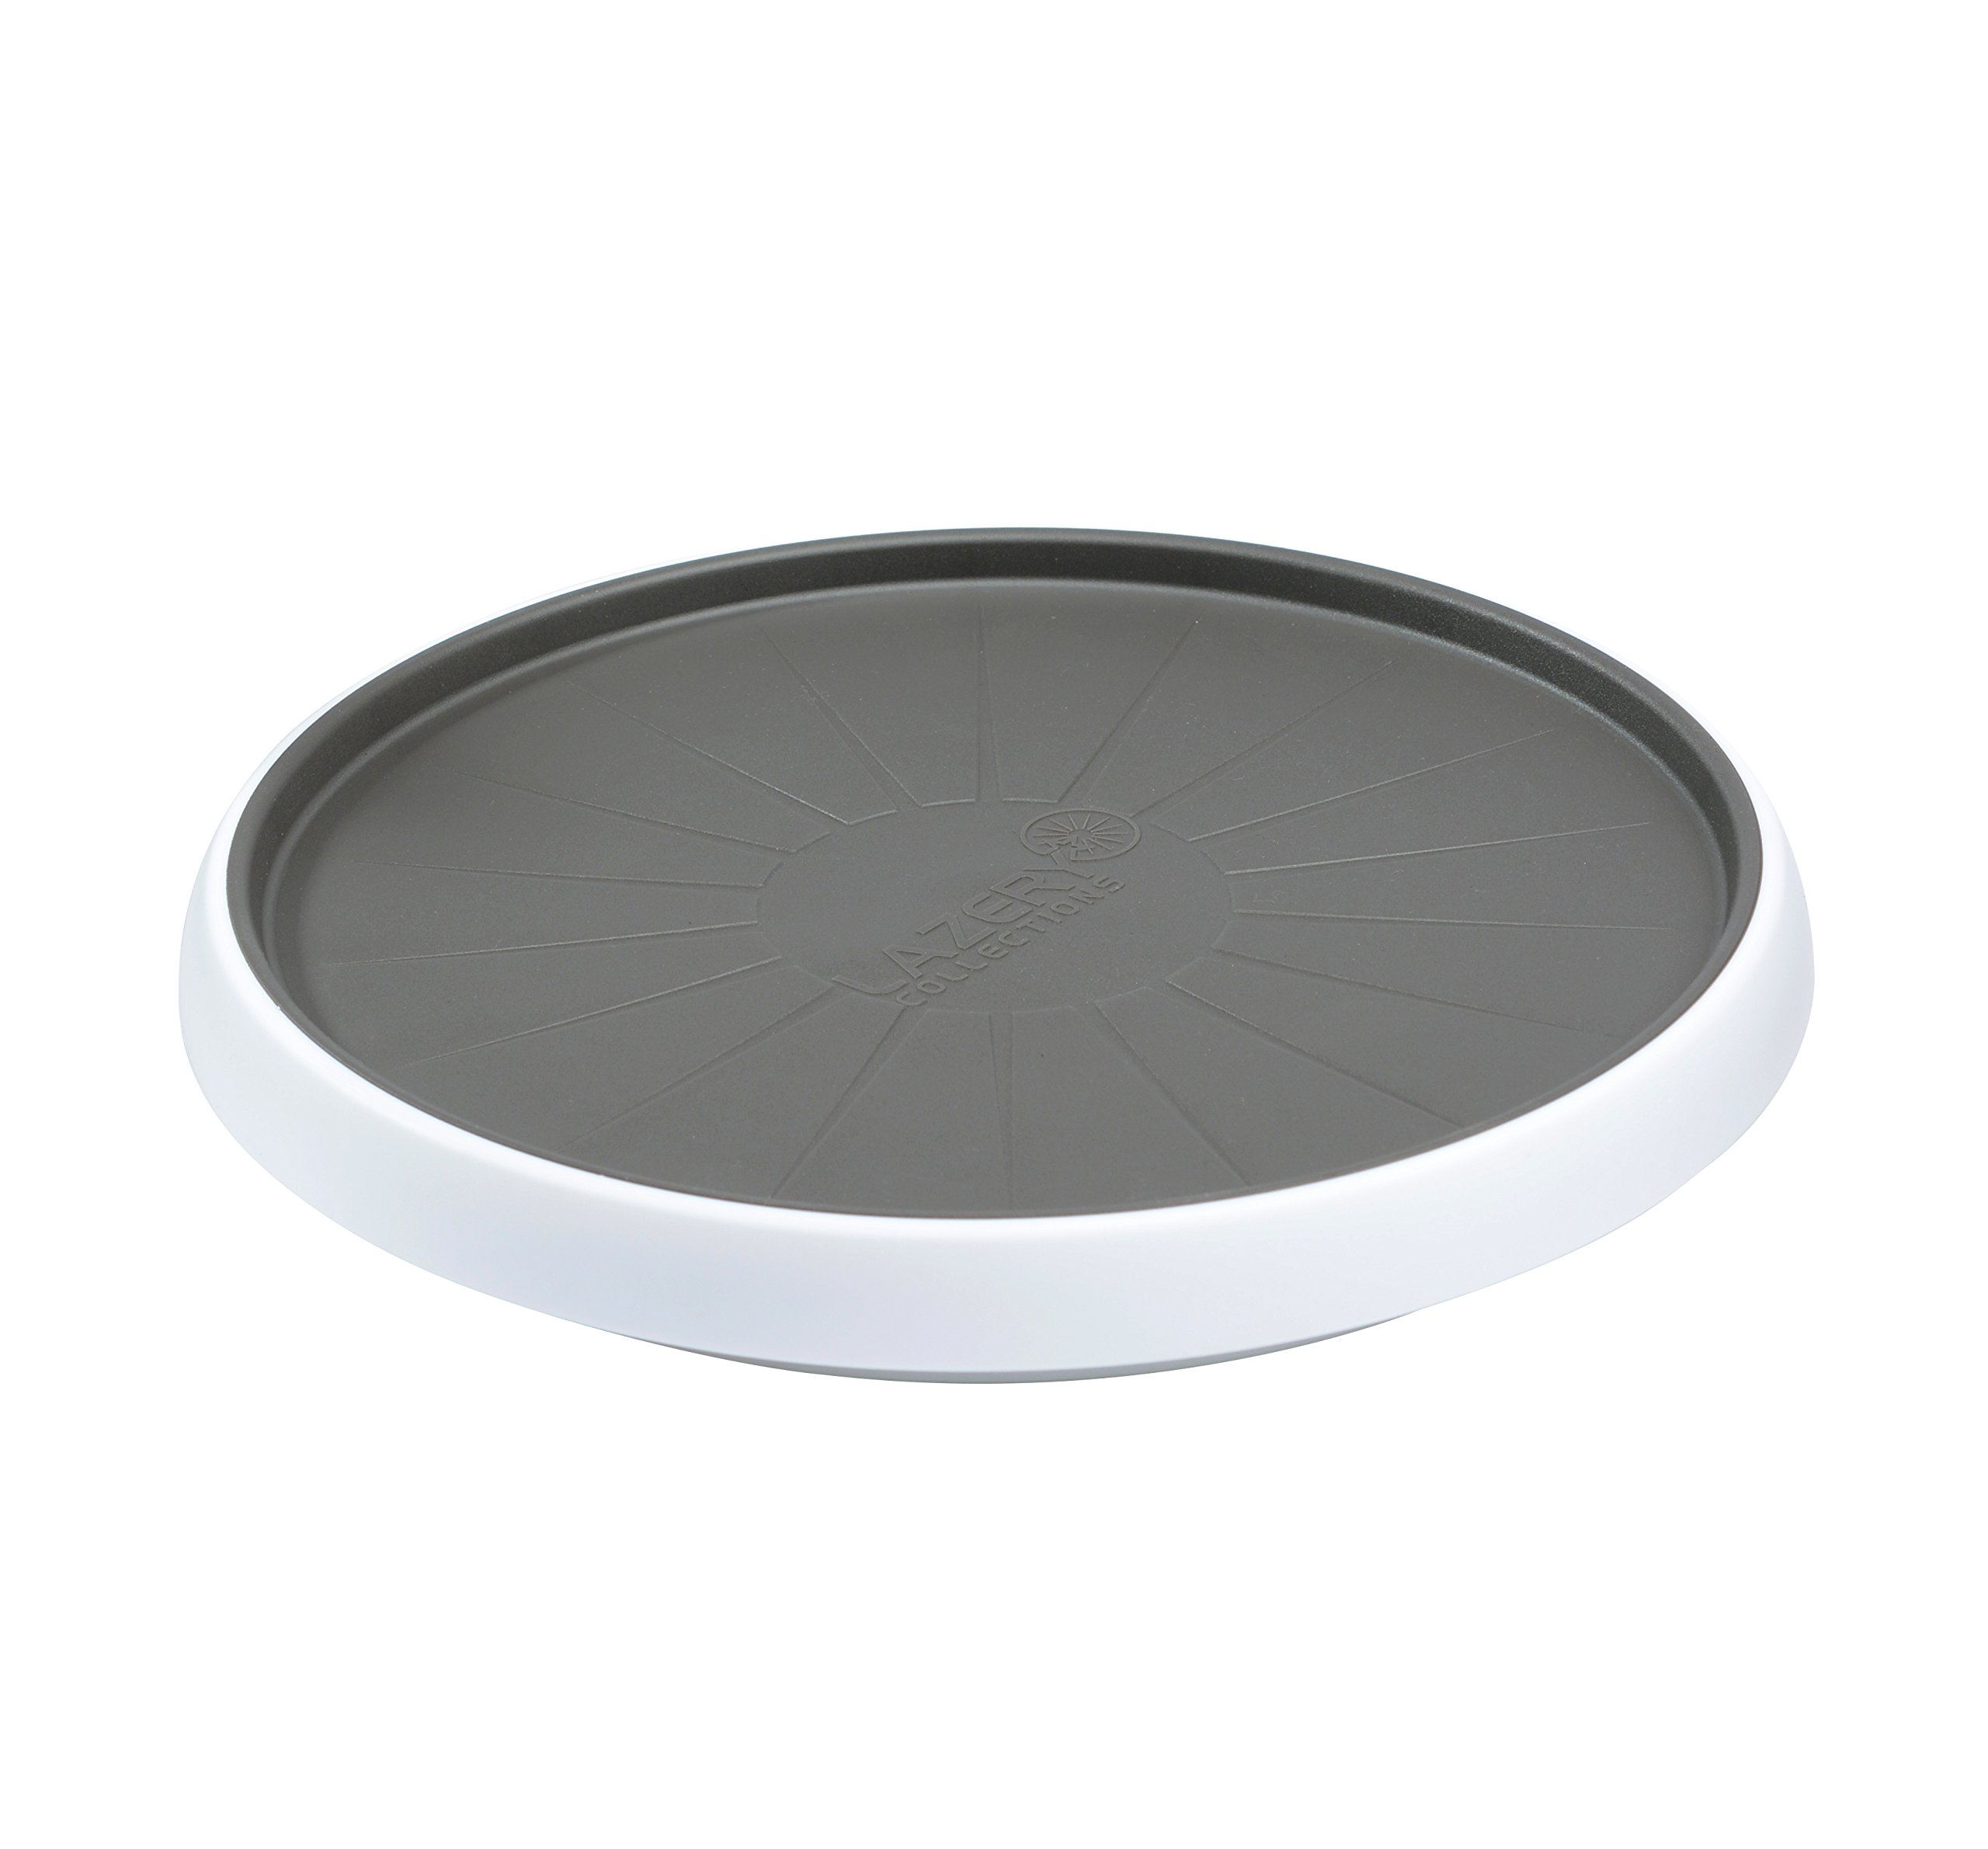 Lazery Collections Gripped Bottom Cabinet Turntable Lazy Susan (12-Inch)